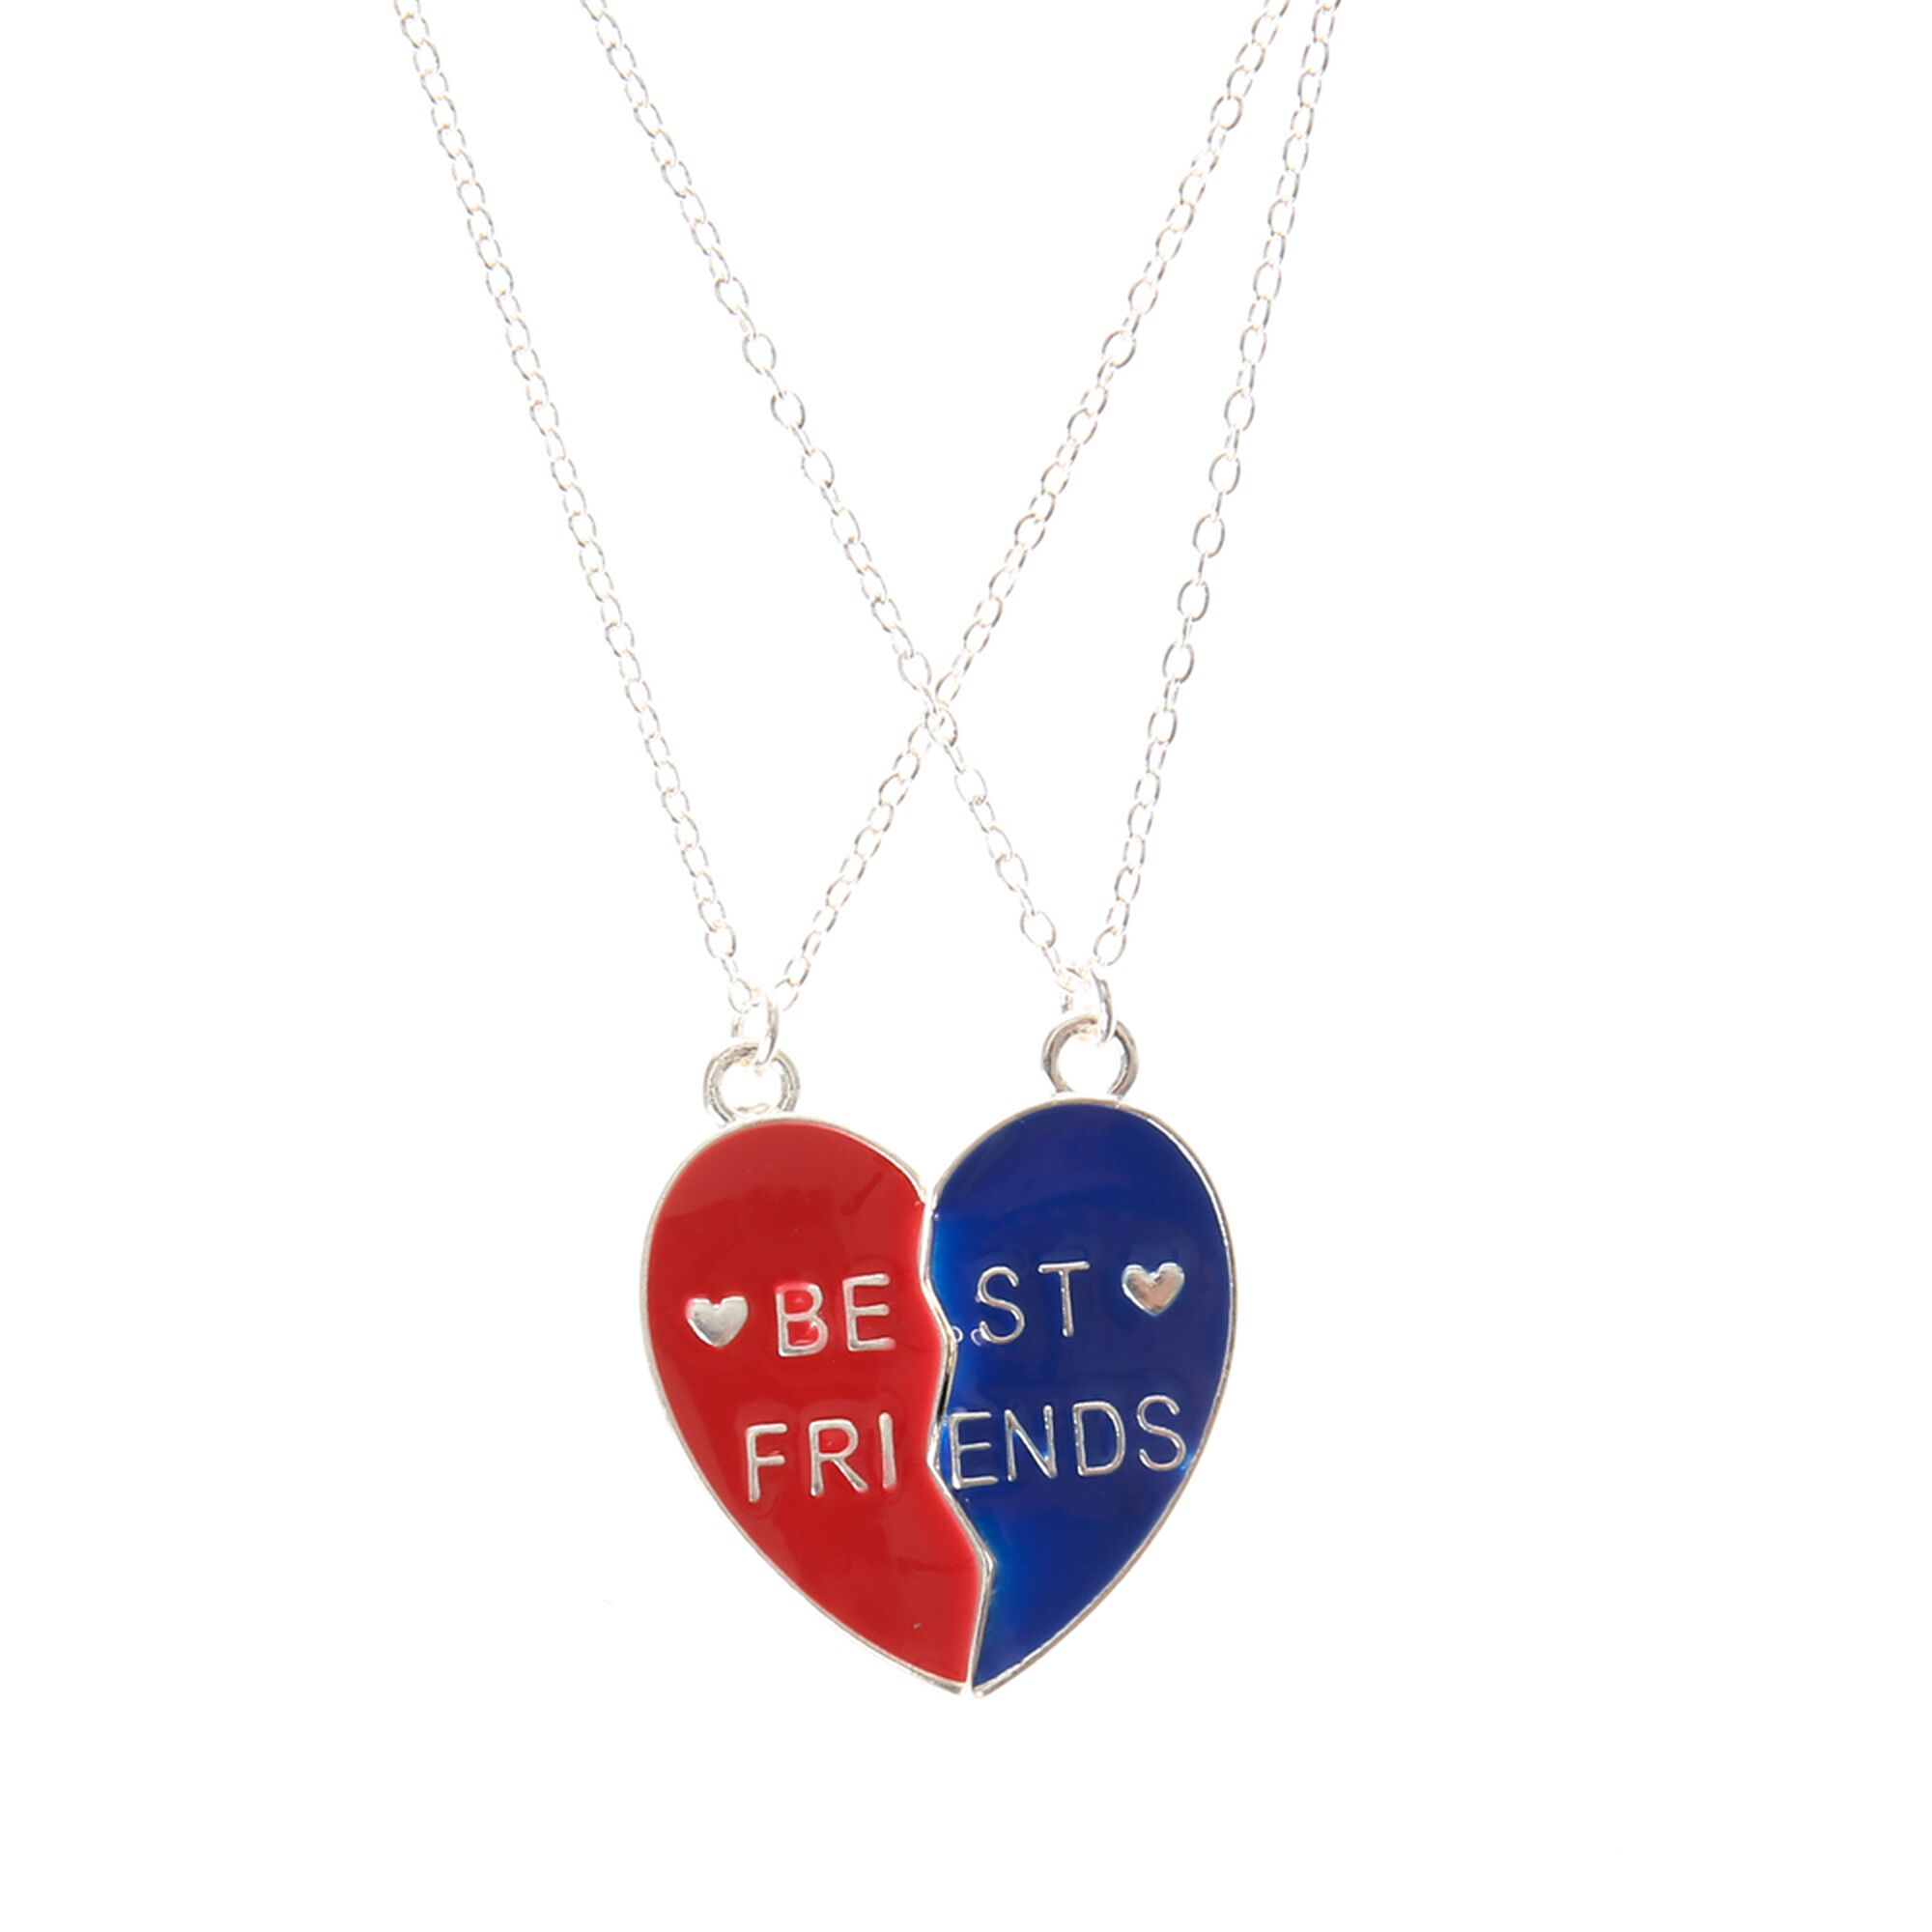 store double necklace red heart